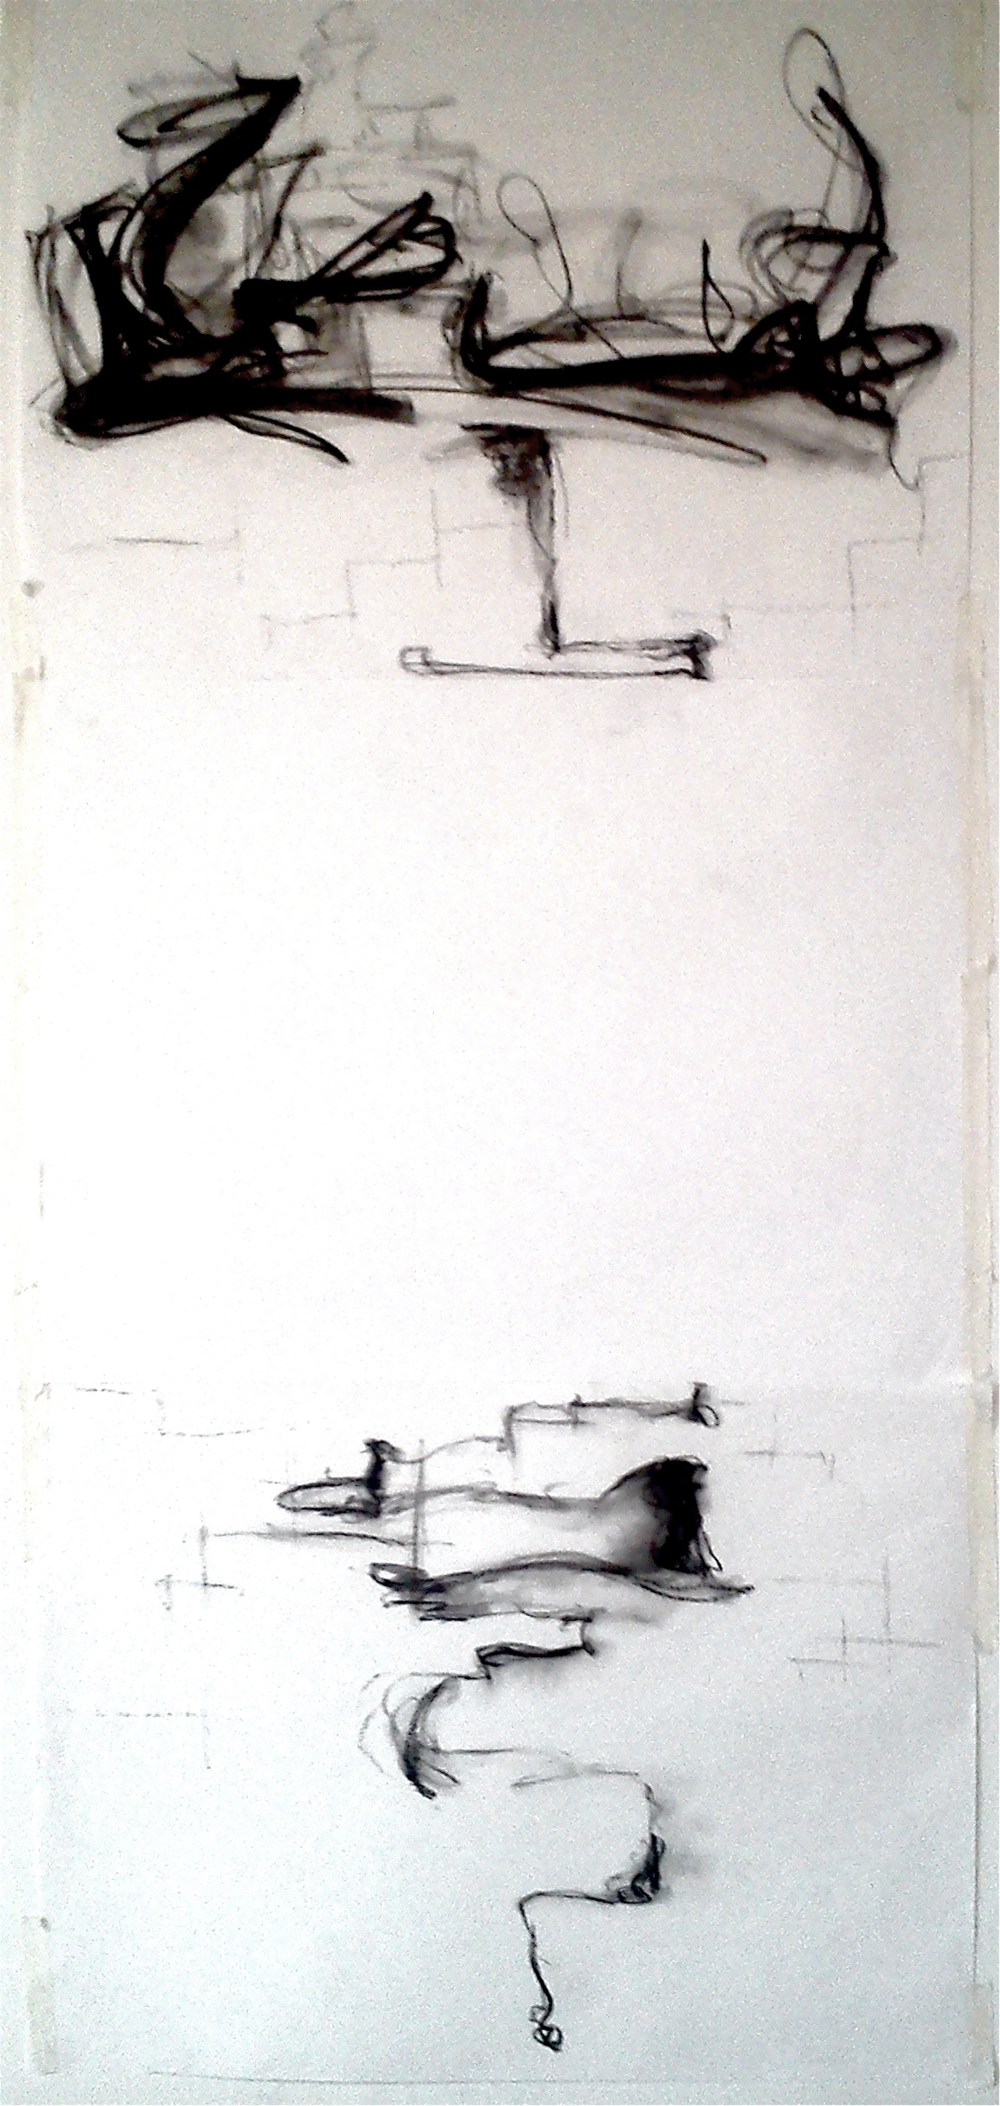 "Walking Blind 33 x 11"" Charcoal on paper"